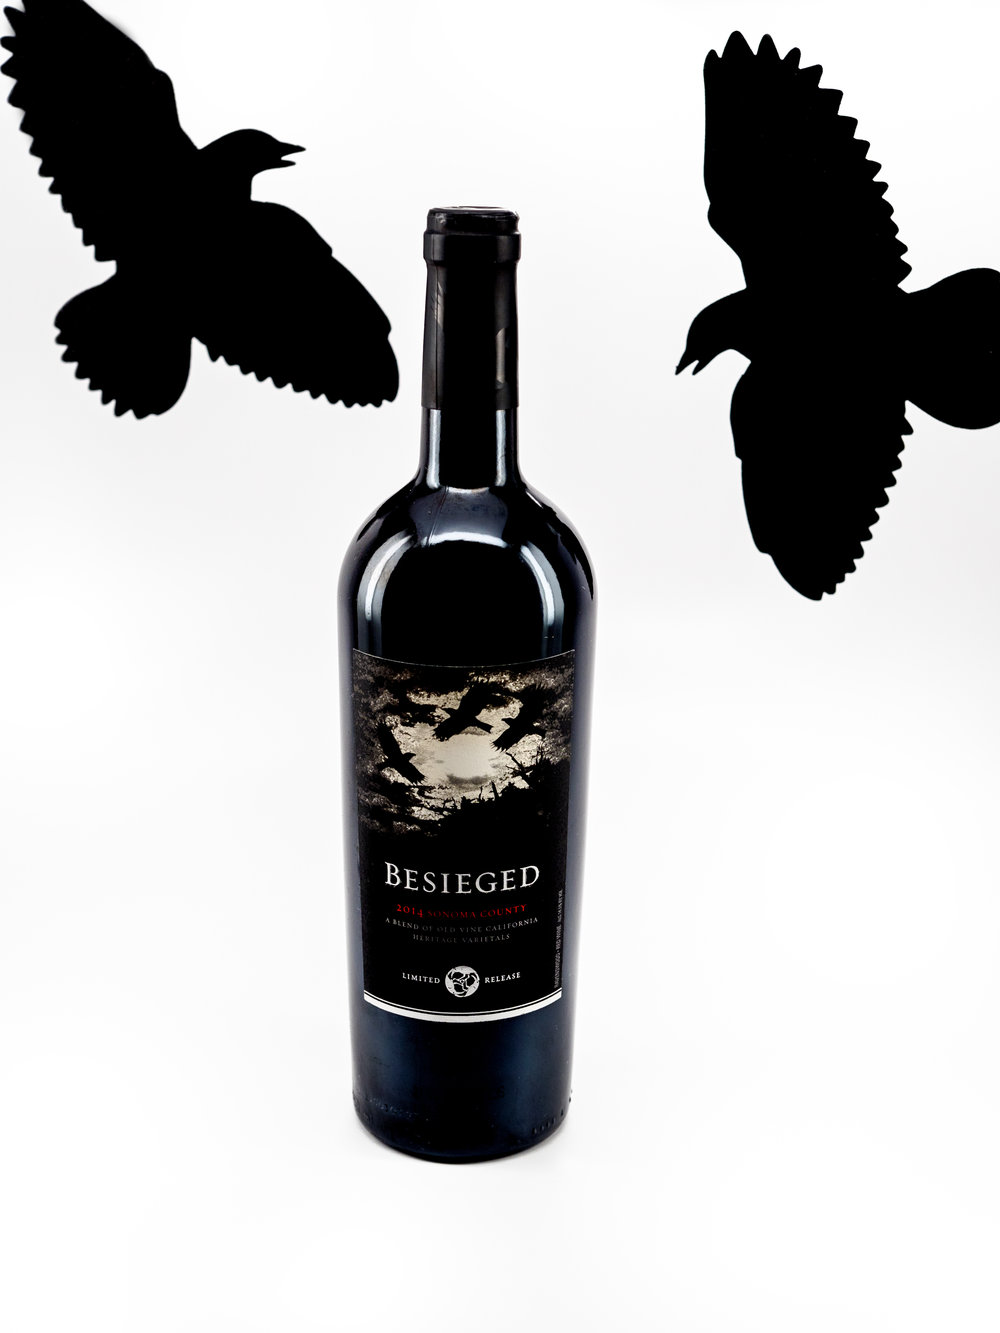 Musings by the Glass - Tips and Recommendations for Spooky Wines for your Halloween Party - Ravenswood Beseiged Red Blend Sonoma Valley California